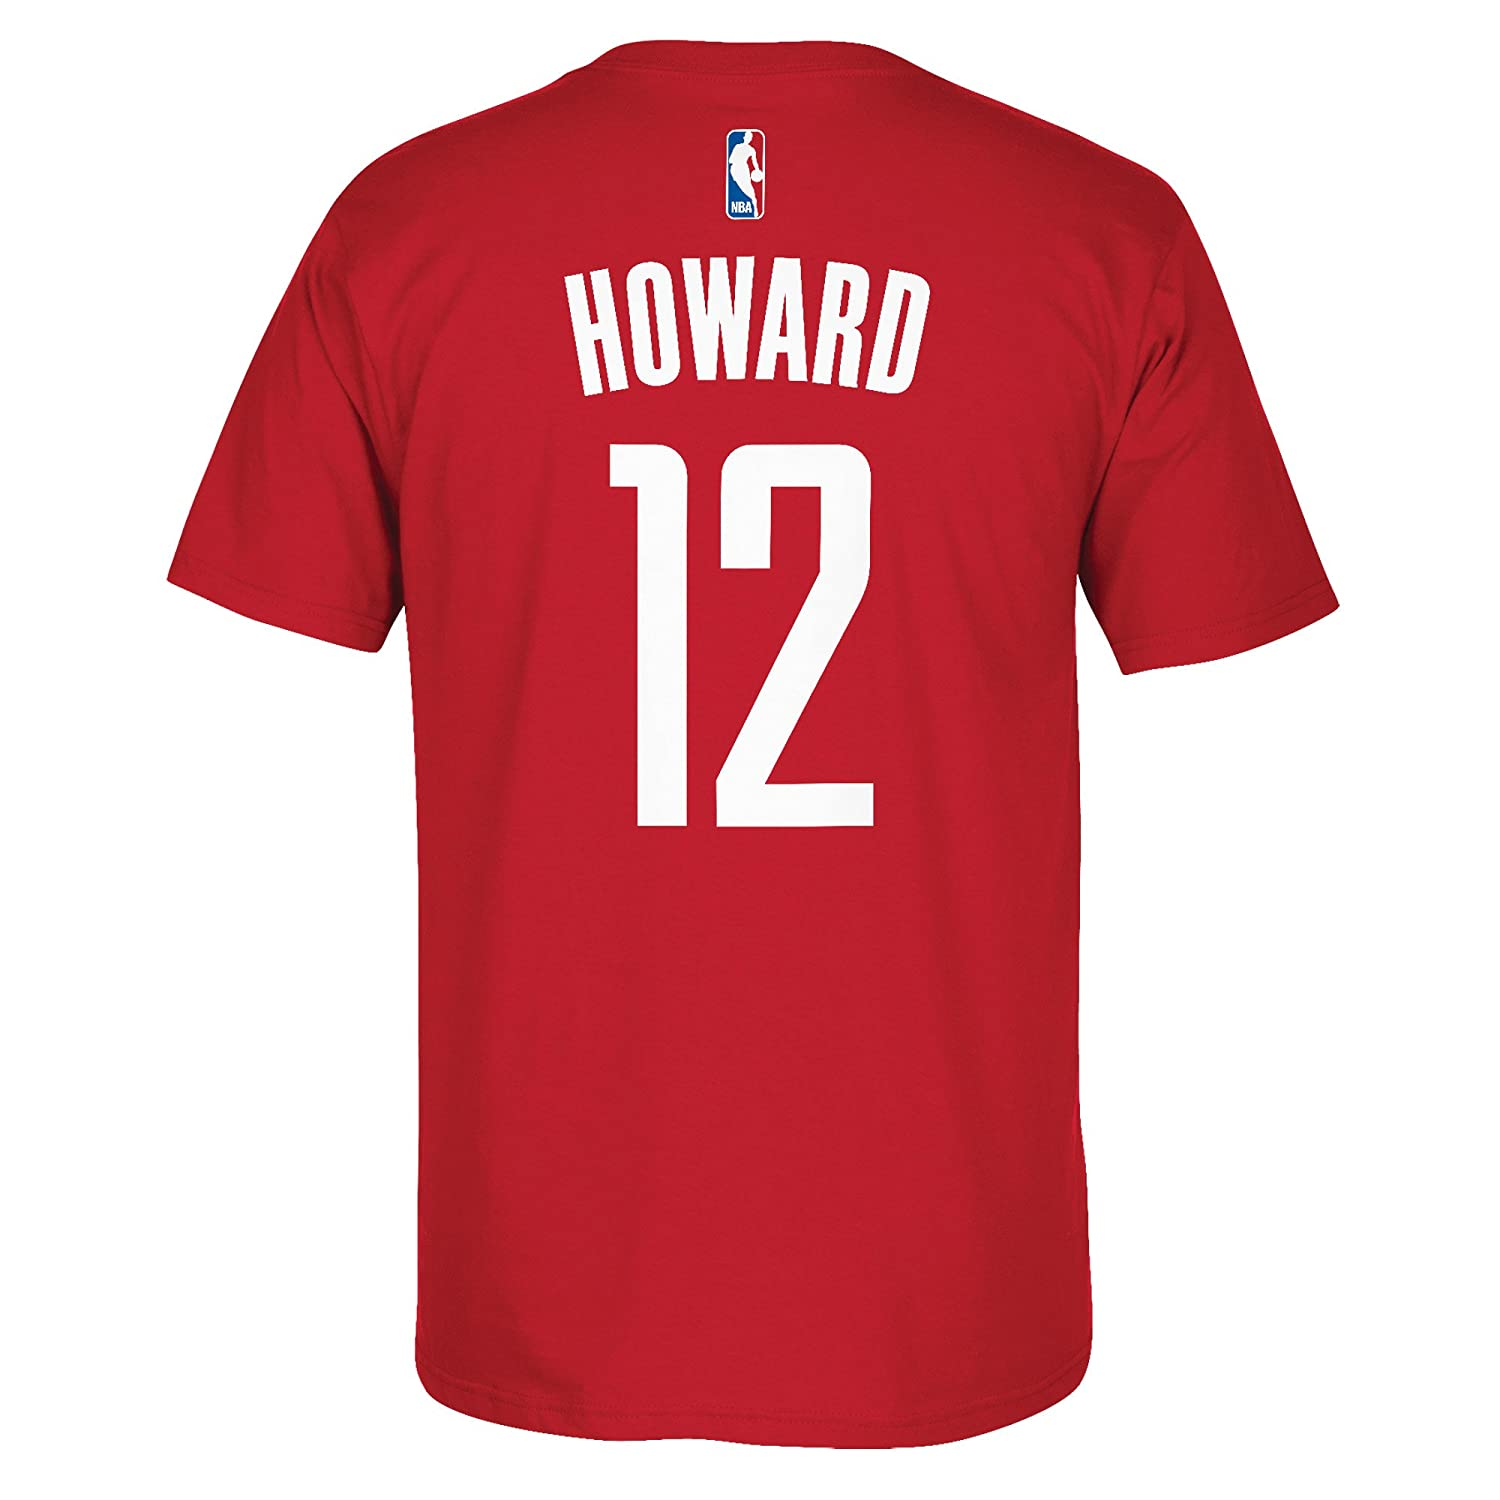 cfabe03c Amazon.com : NBA Houston Rockets James Harden #13 Men's 7 Series Name & Number  Short Sleeve Tee, XX-Large, Red : Clothing